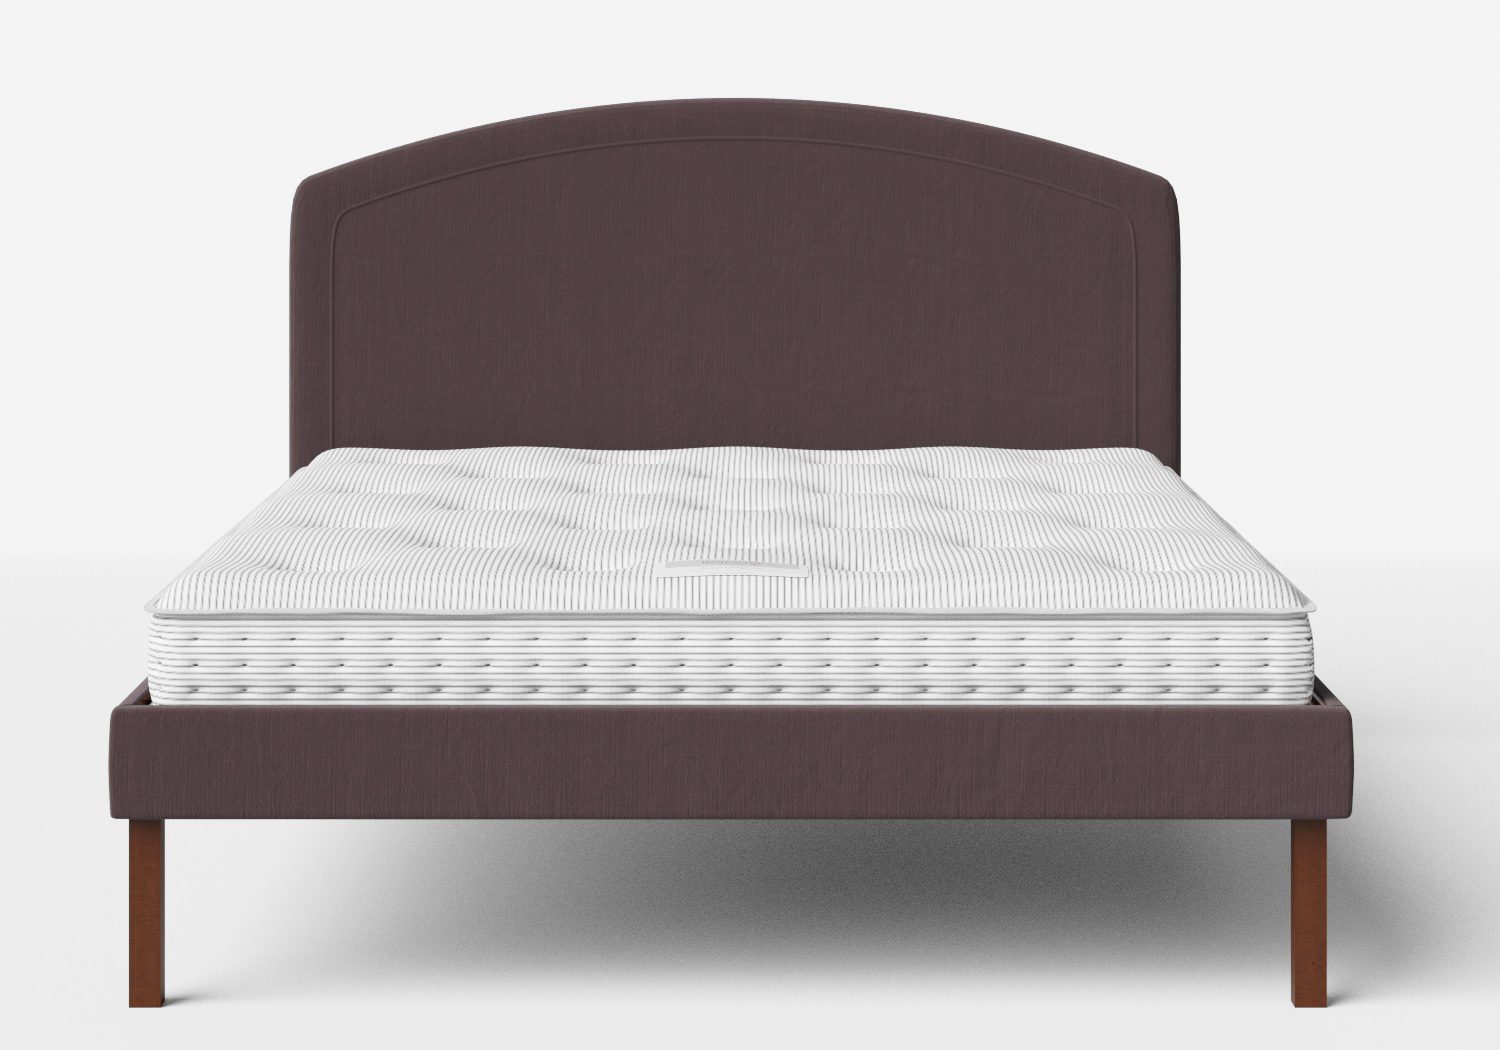 Okawa Upholstered Bed in Aubergine fabric shown with Juno 1 mattress